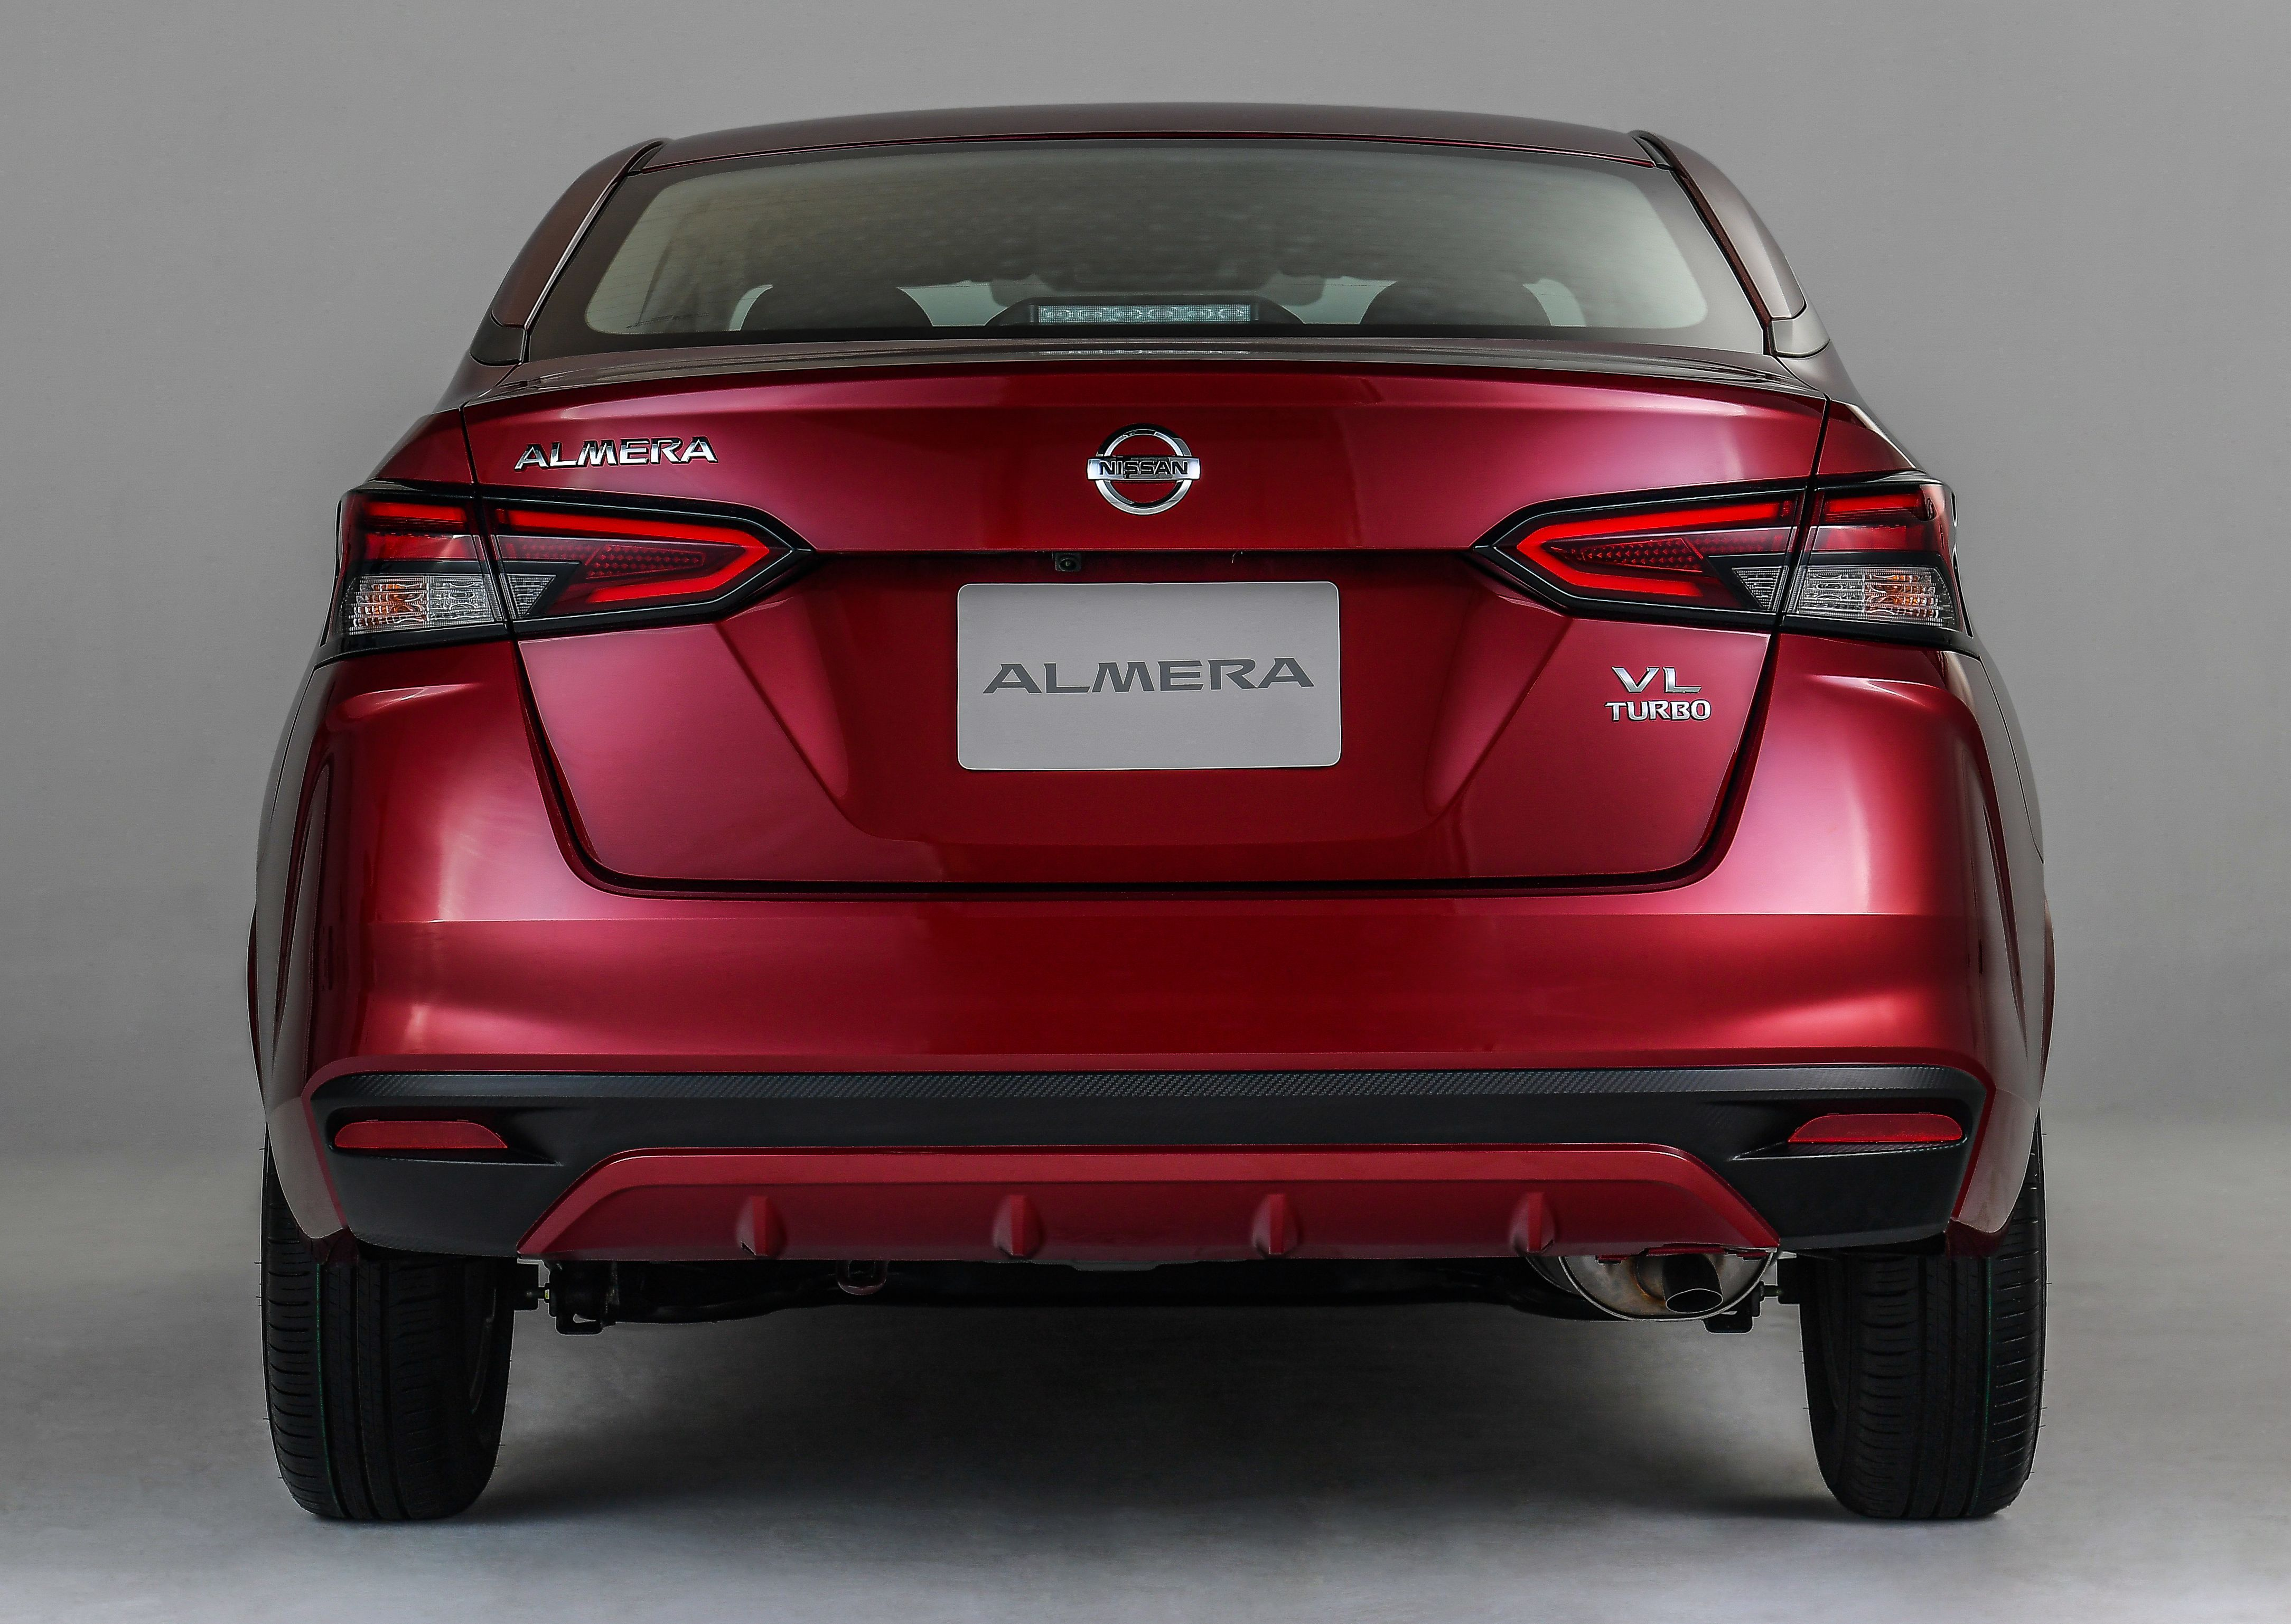 2020 nissan almera makes asean debut, launched in thailand